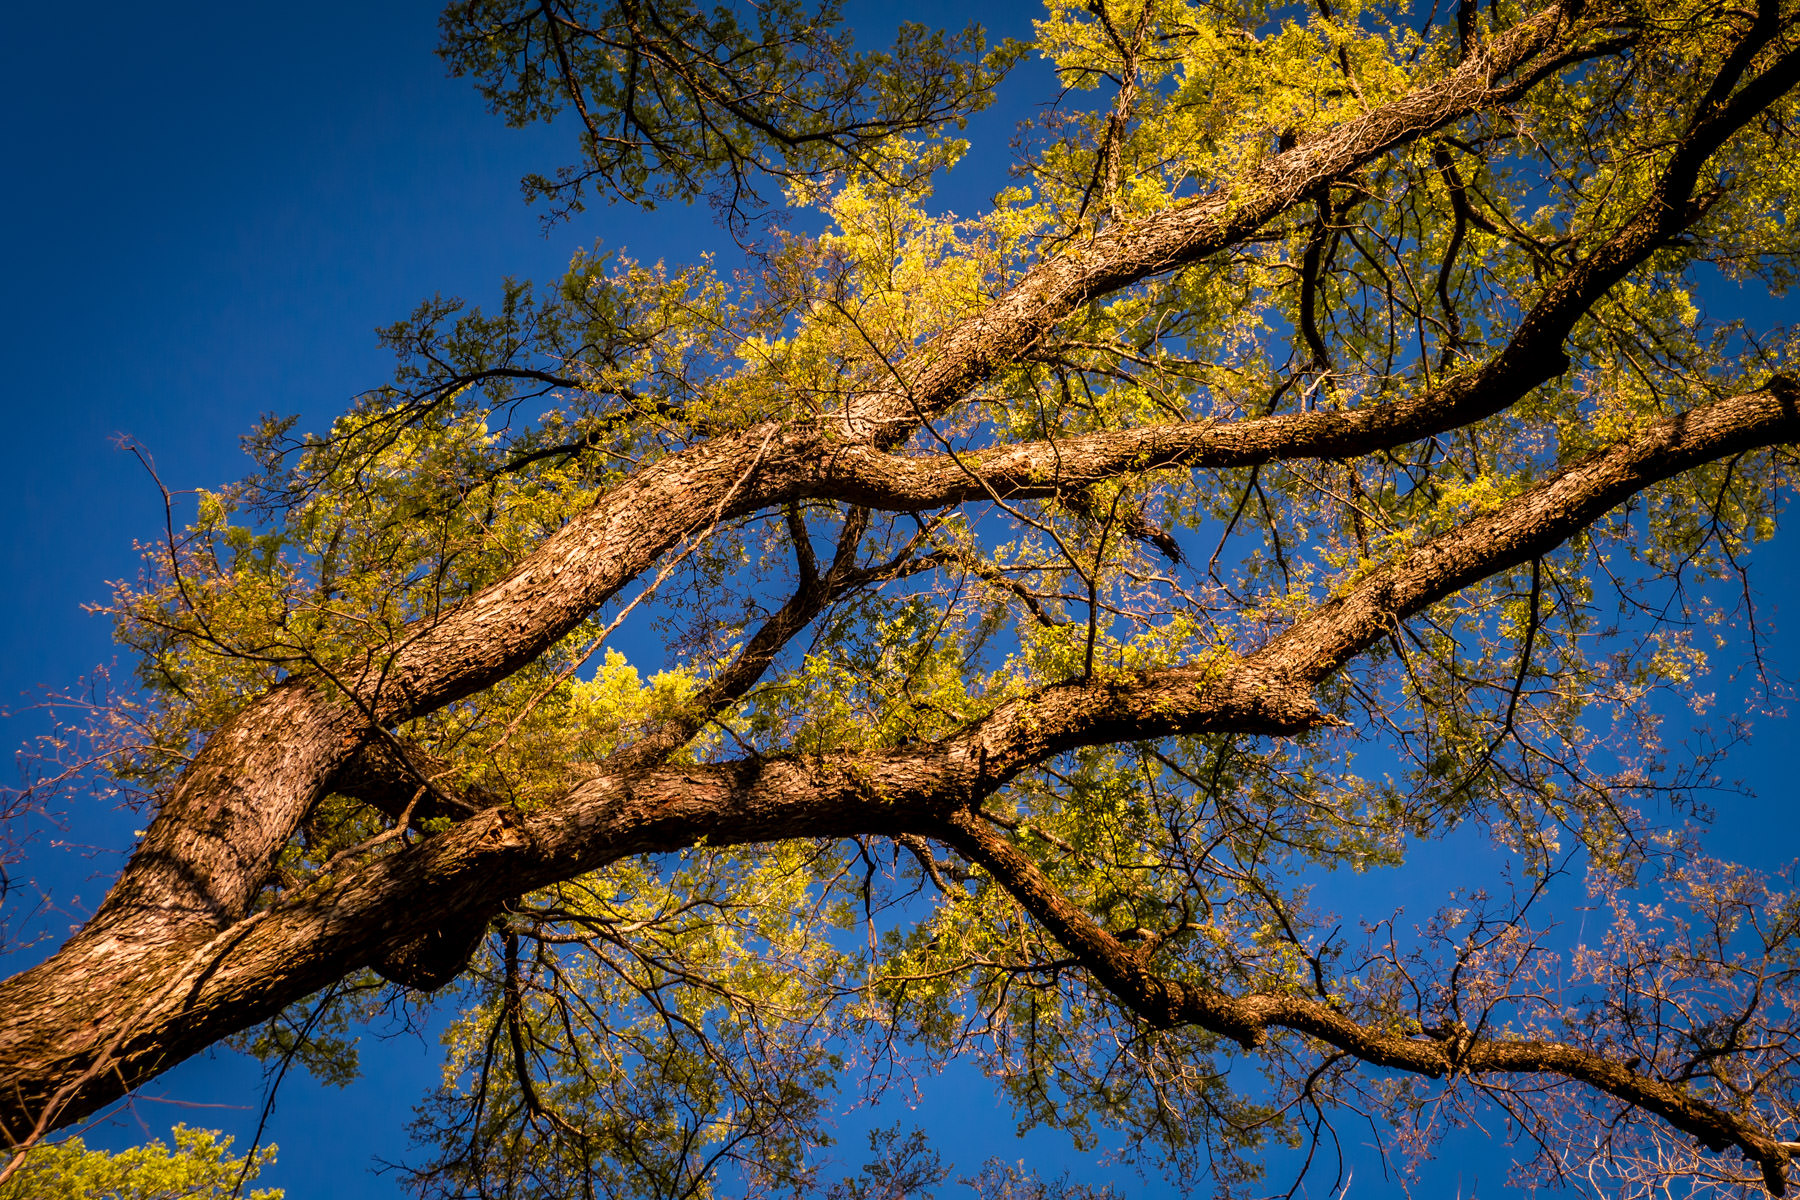 A tree seems to reach across the blue sky over North Texas in Dallas' Great Trinity Forest.